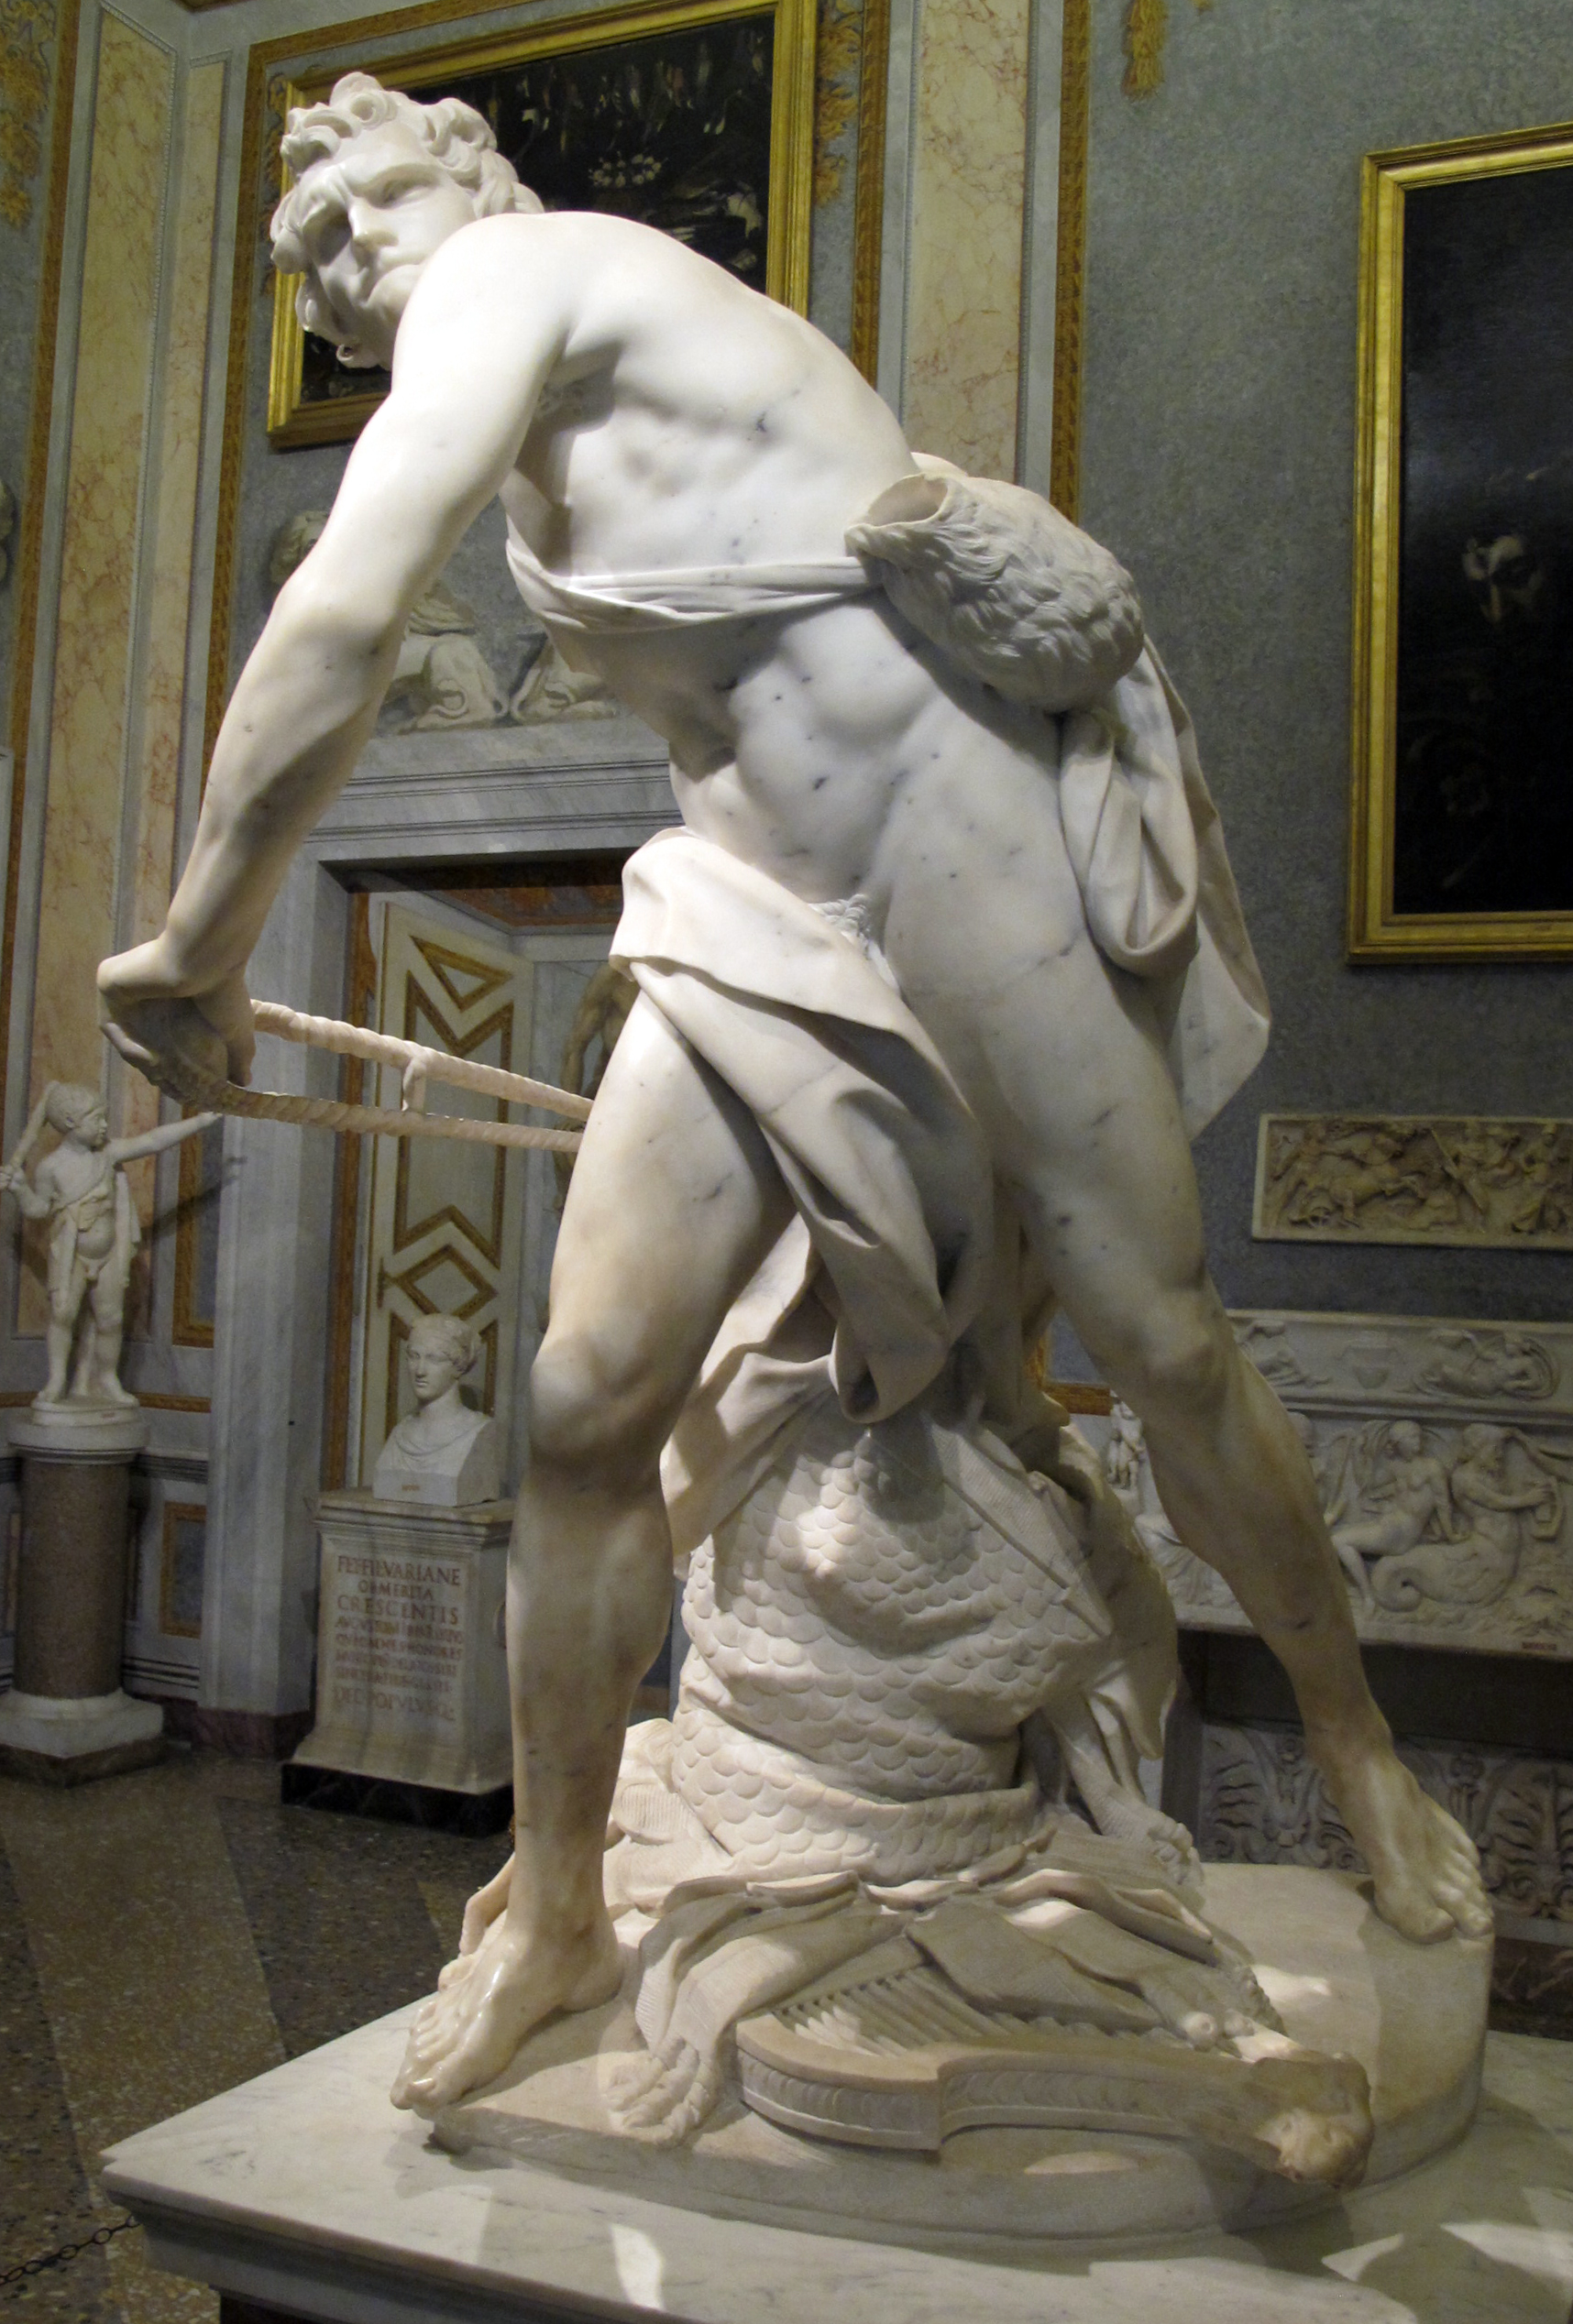 an analysis of the sculptures of david by donatello verrocchio michelangelo and bernini What is the difference between donatello and michelangelo's and verrocchio david donatello's david does not seem as much of is bernini's david.